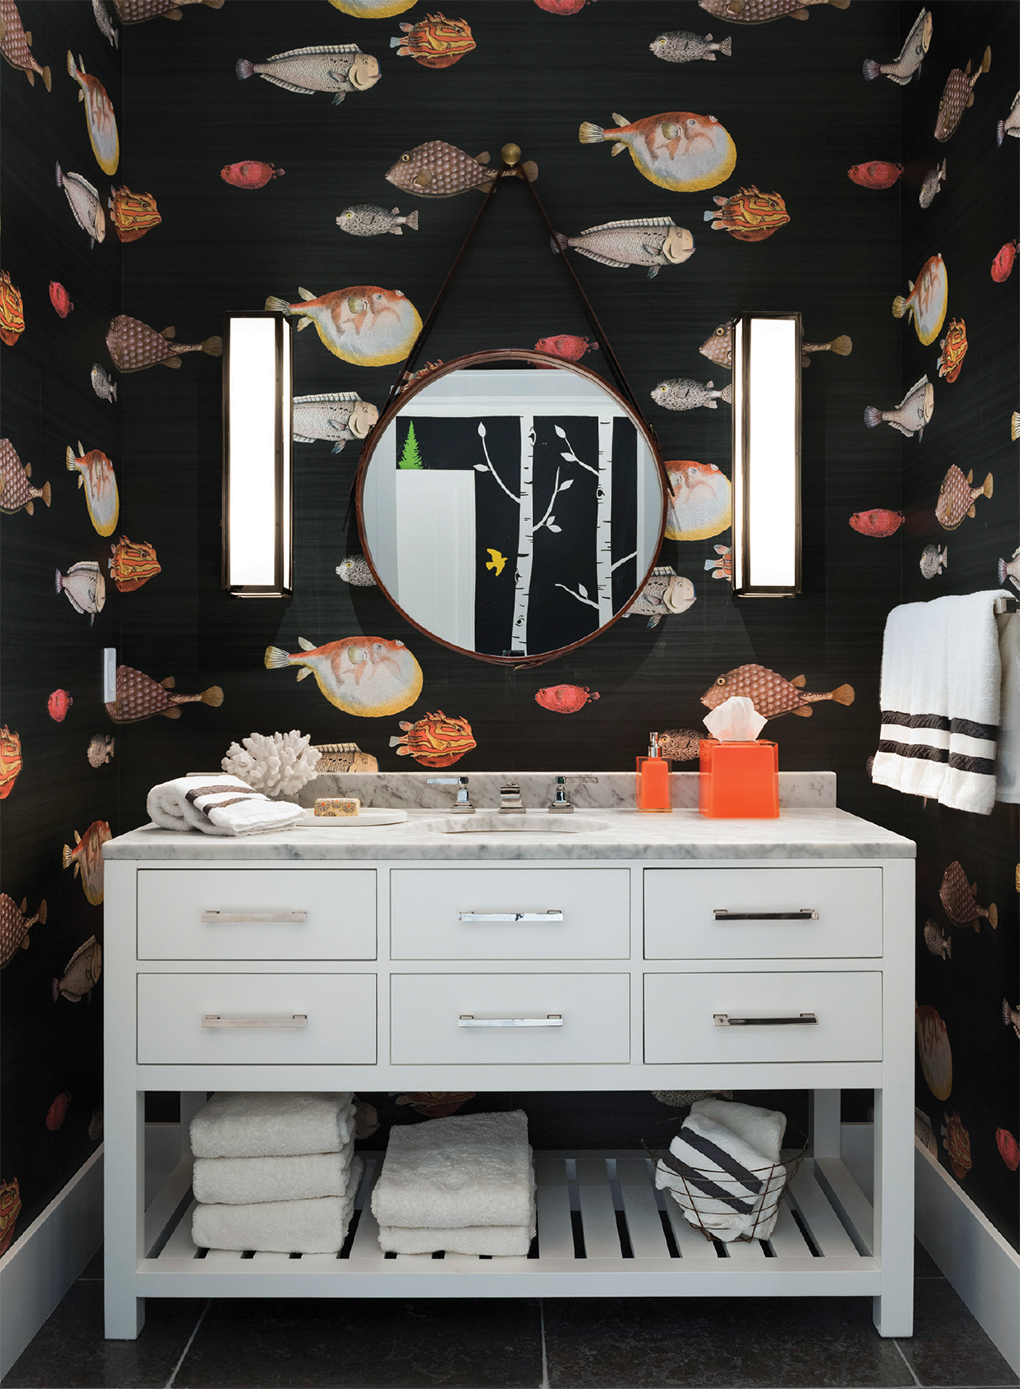 A nautical bathroom with fish wallpaper.